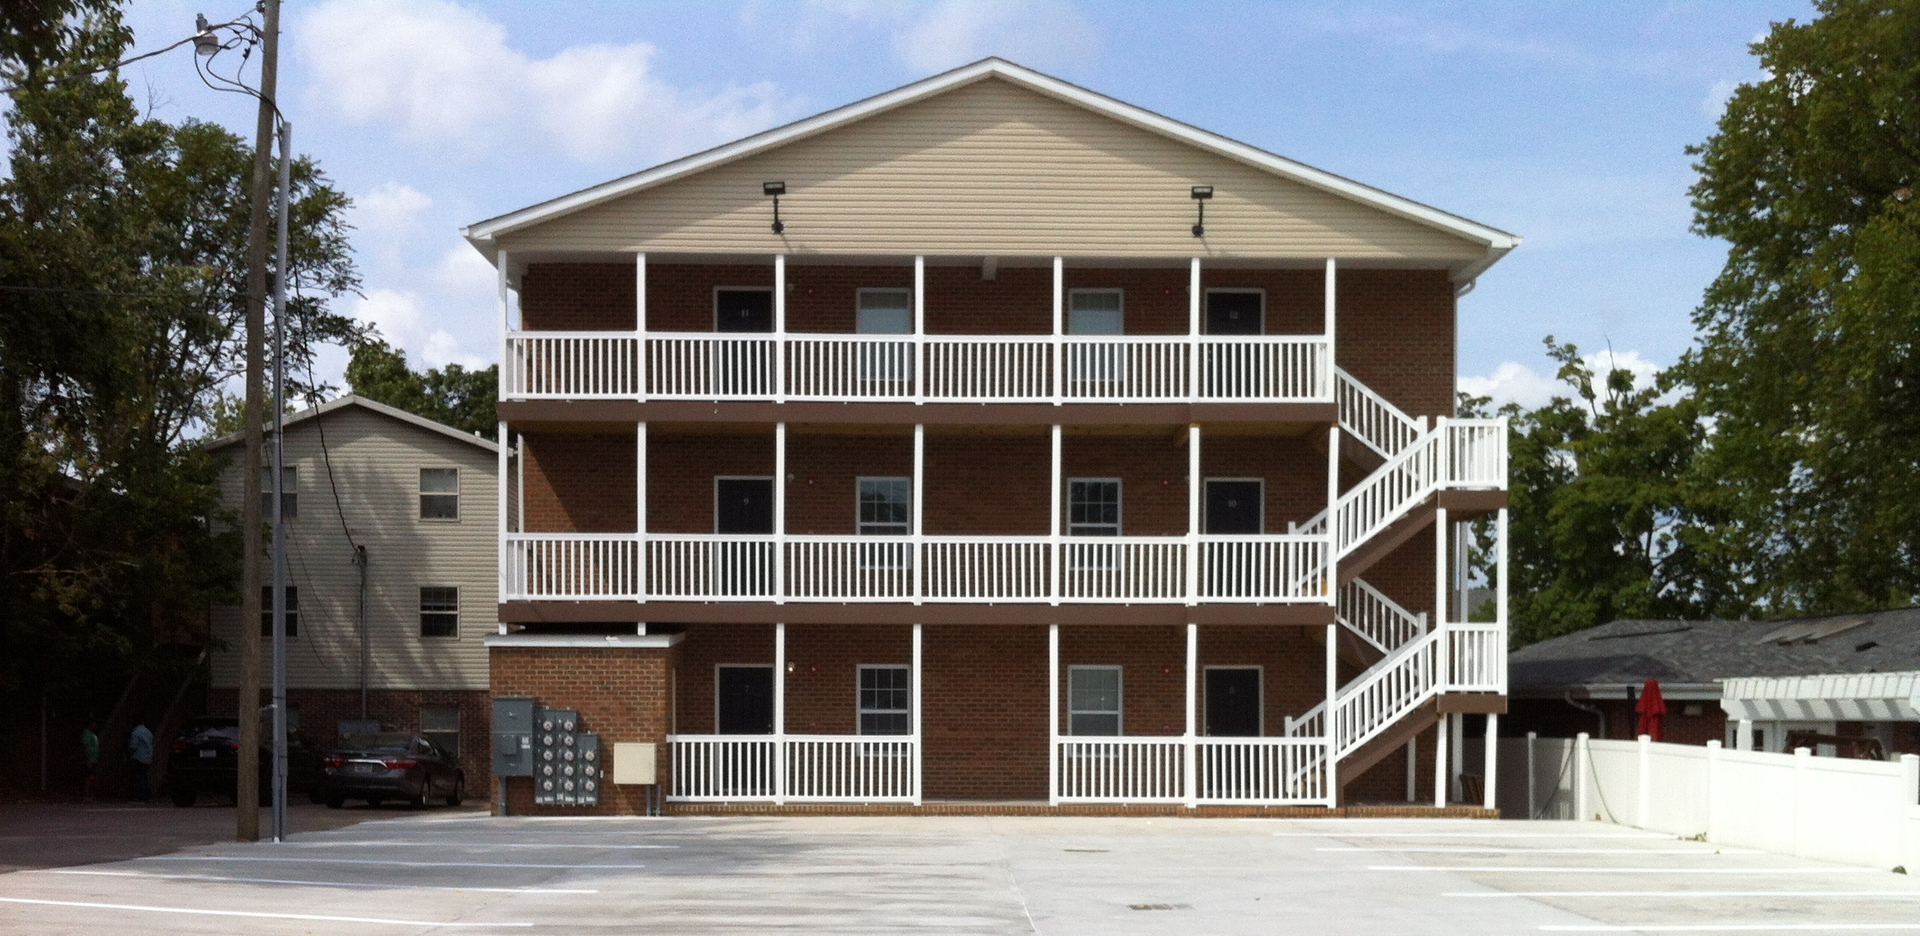 Apartment Amenities  Building  3   1619 6th Ave  Huntington  WV 25703 1 100  sqft   2 bedrooms with 2 1 2 bathrooms   W D included   off street parking. Campus Edge Apartment Rentals